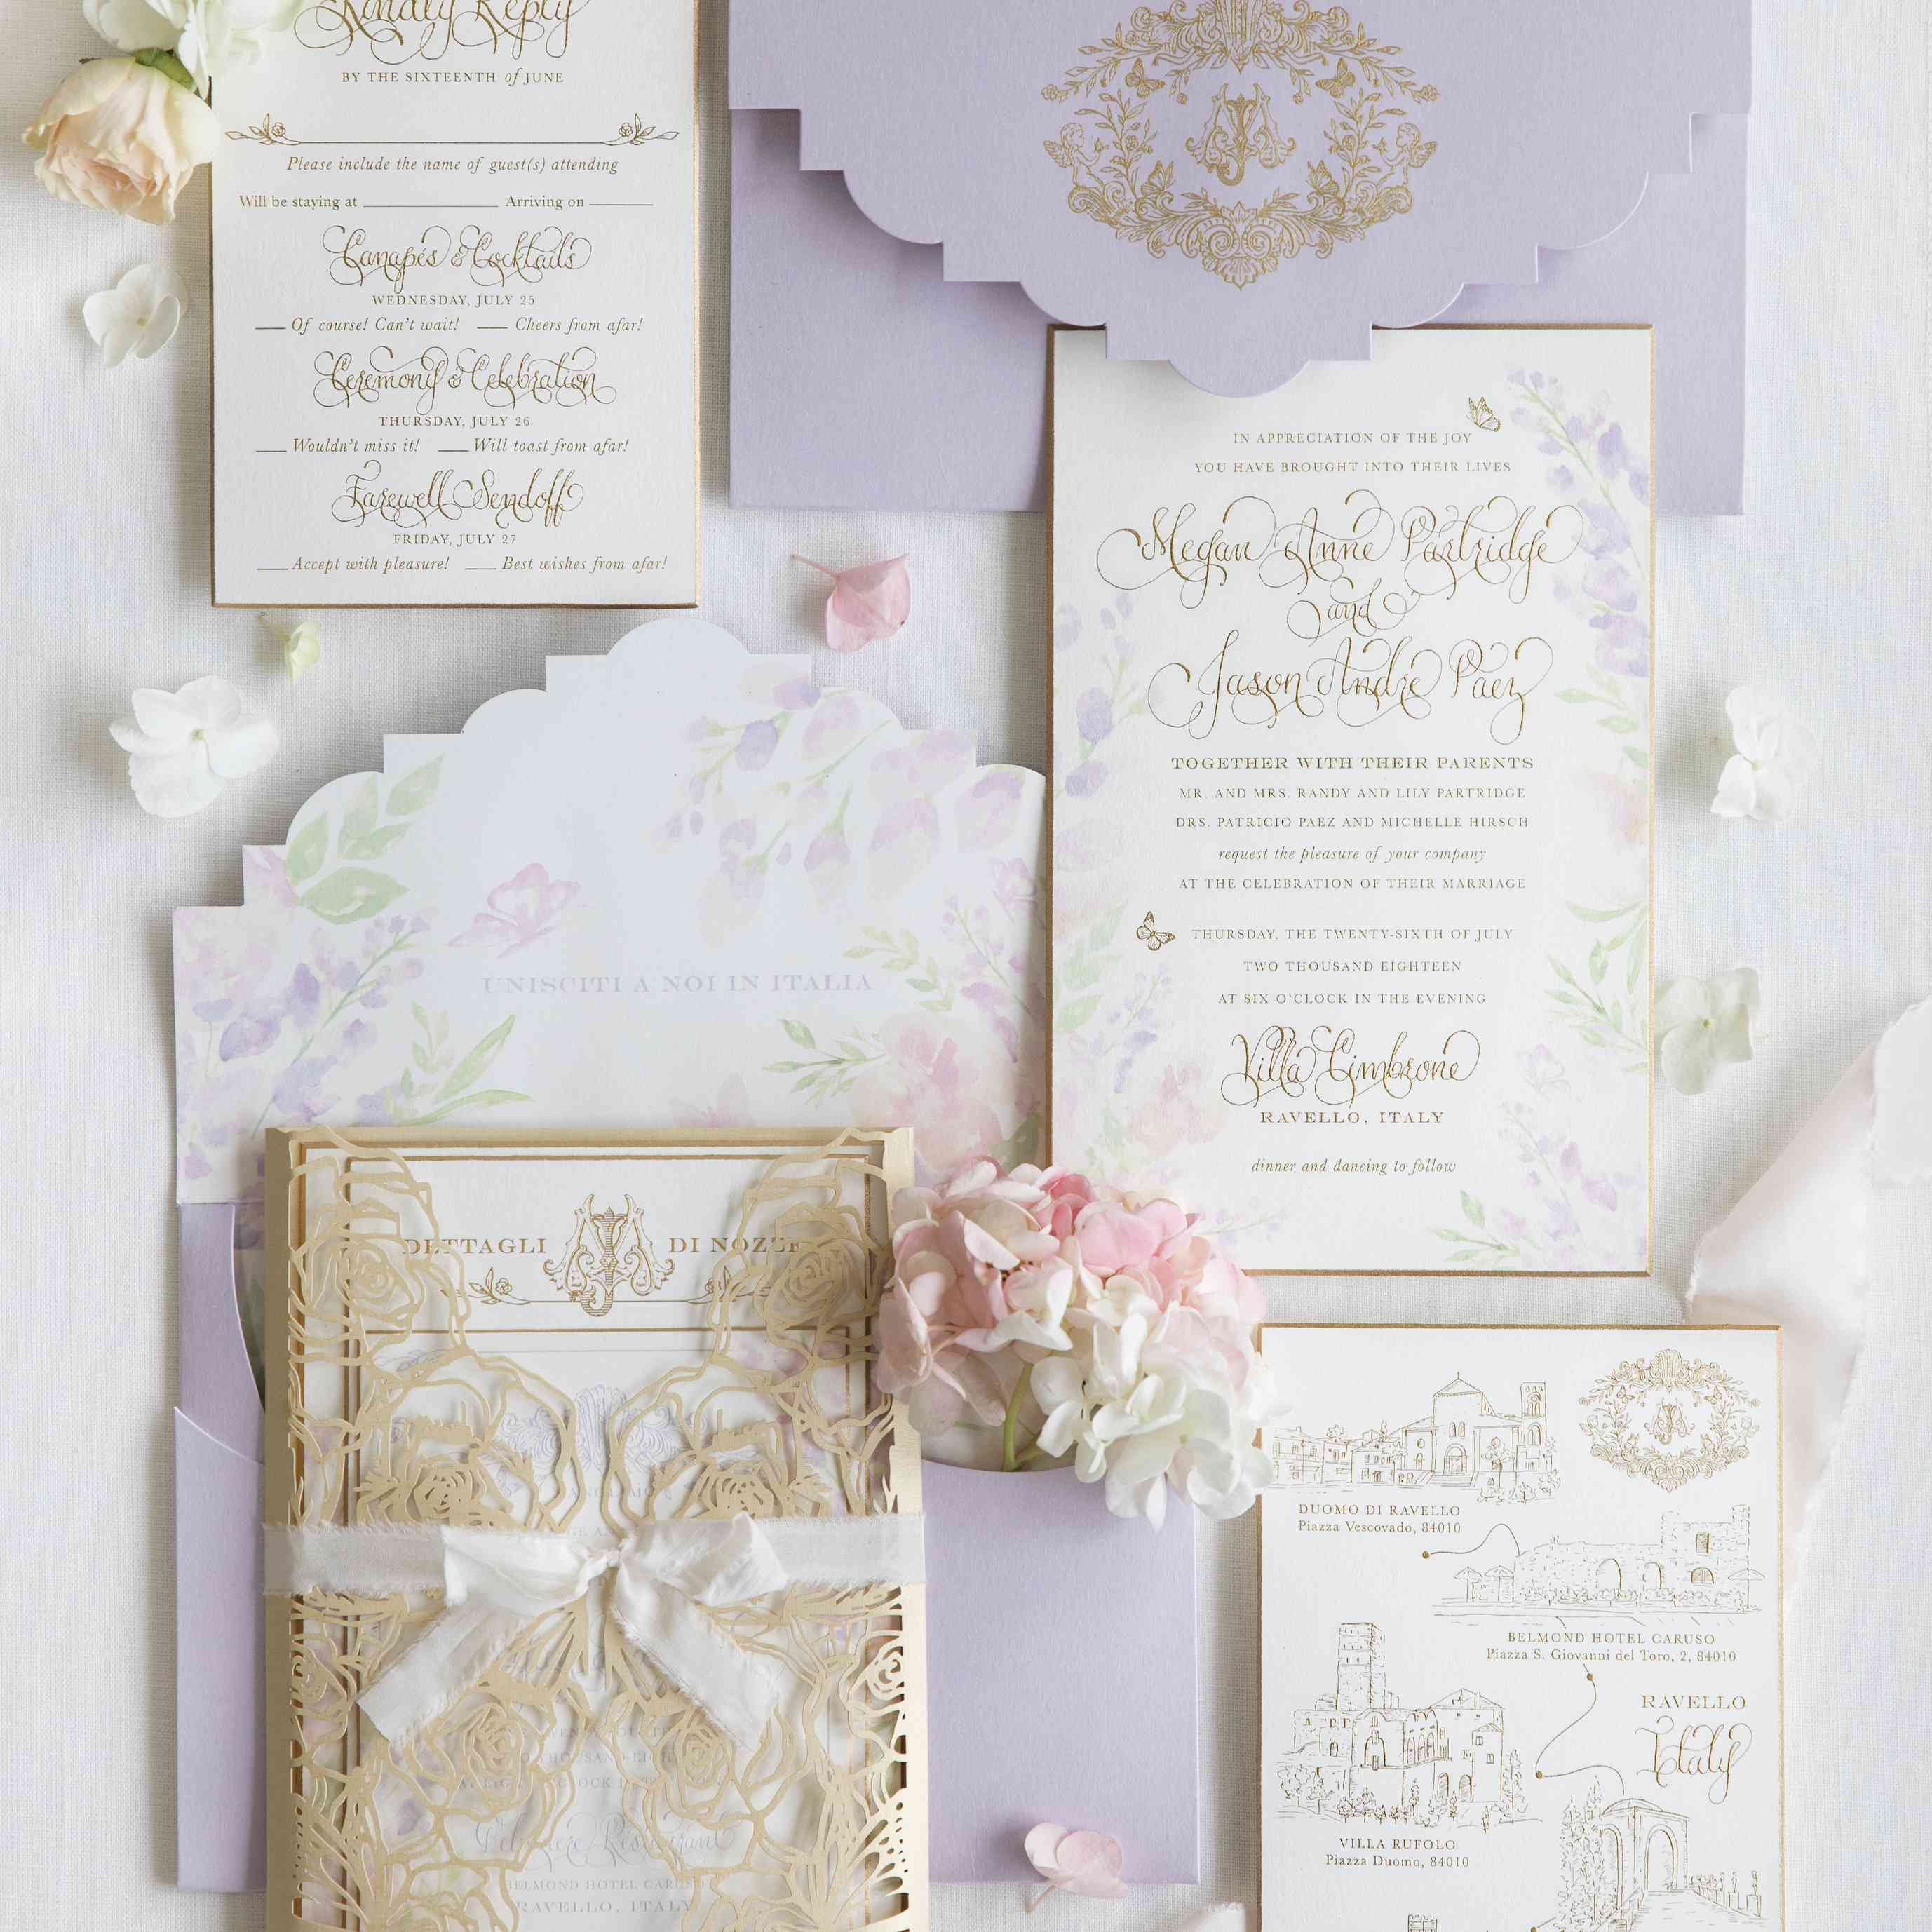 27 Unique Wedding Invitation Ideas For Every Couple And Wedding Style